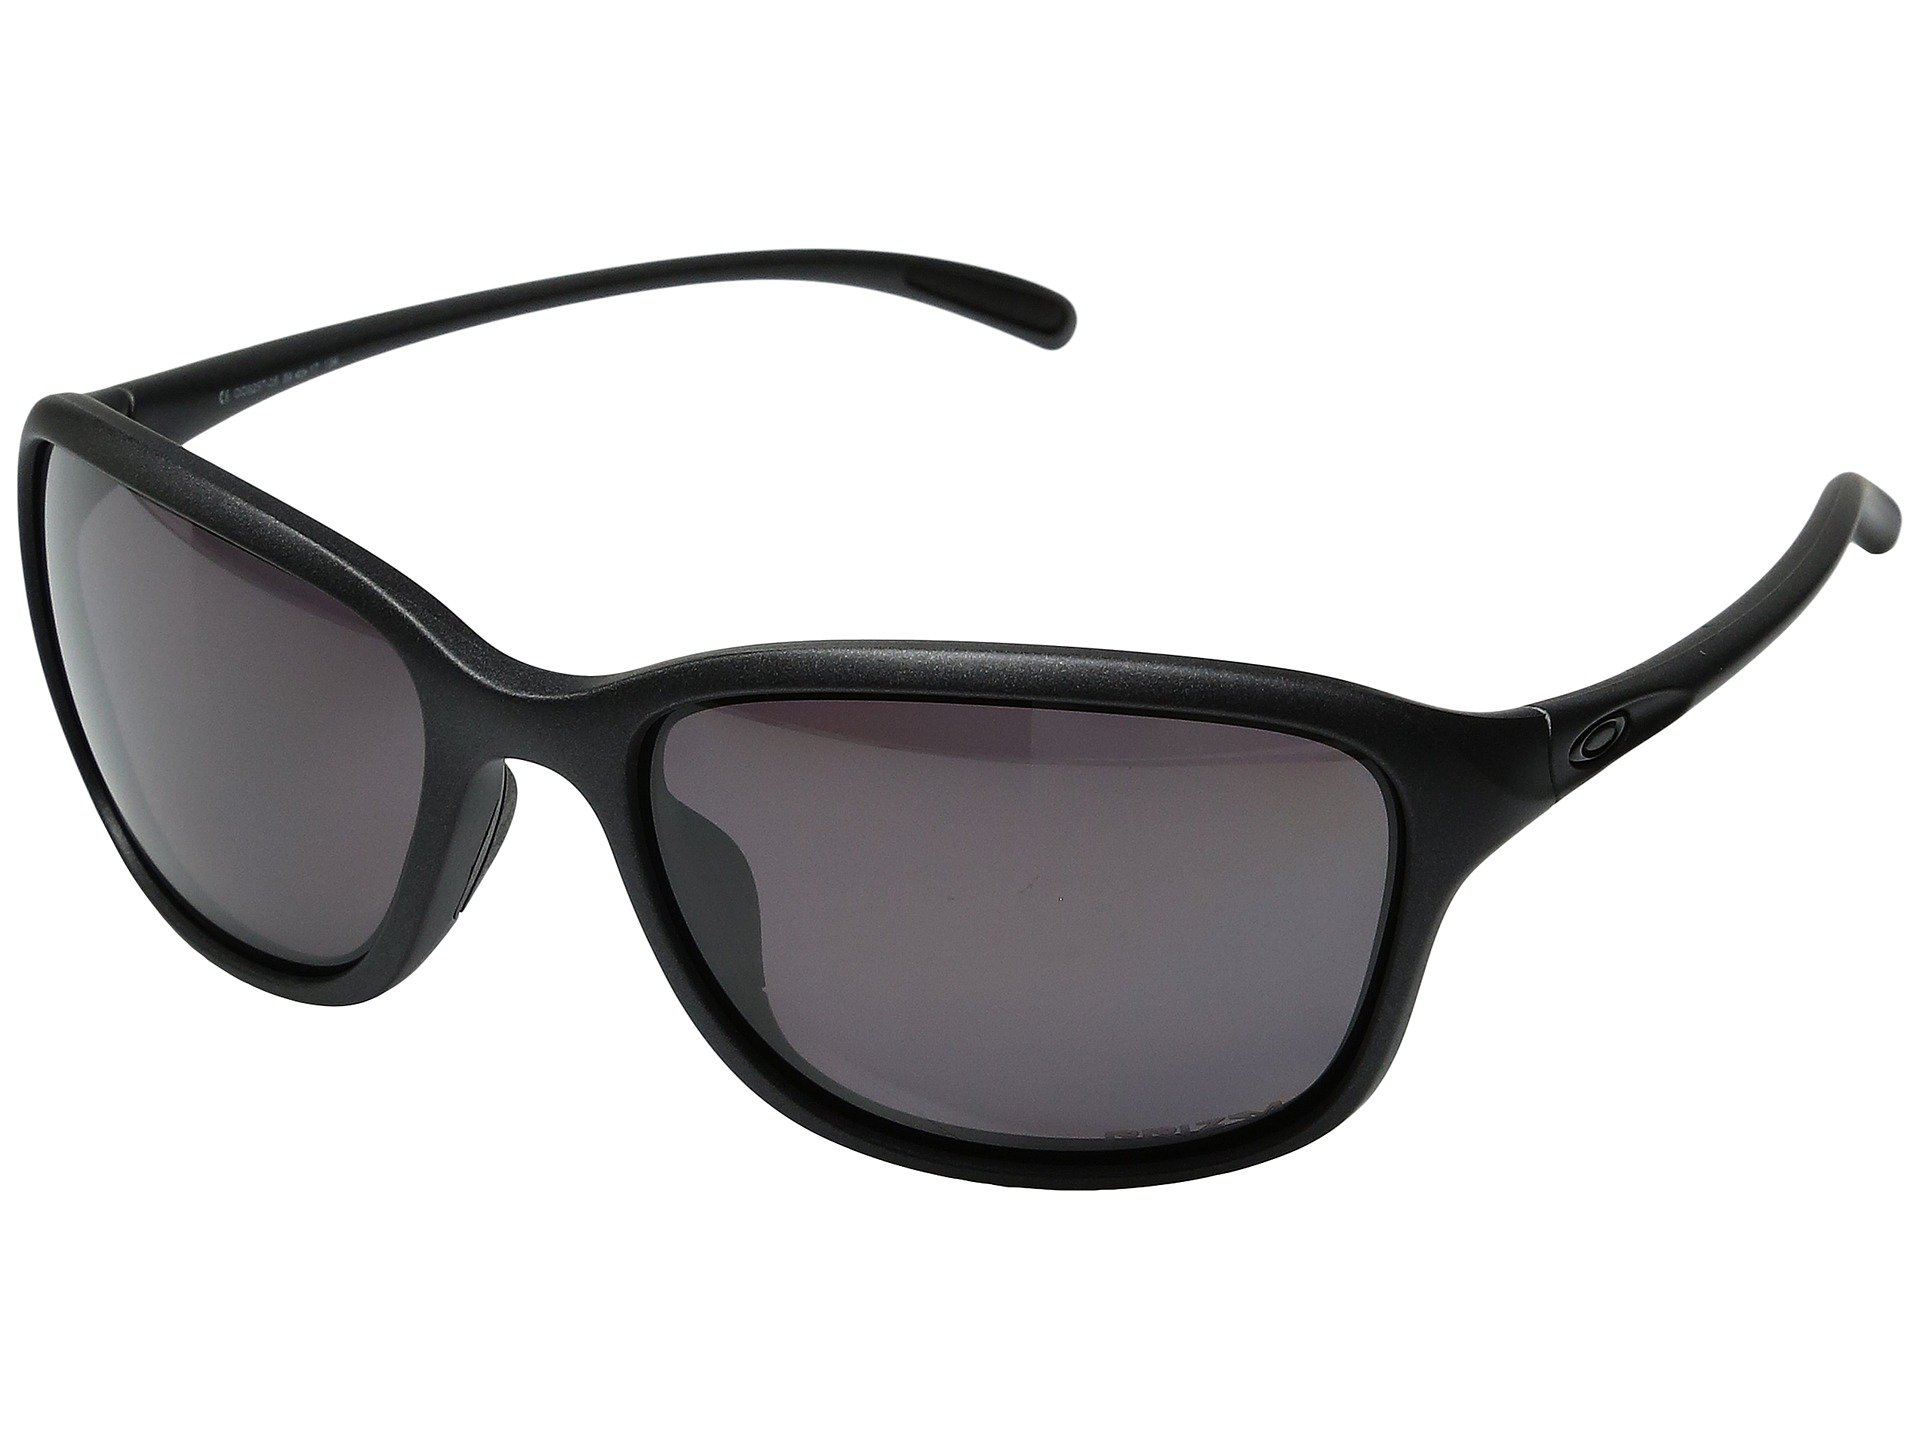 0bfd6f6c1a She s Unstoppable Oakley Sunglasses